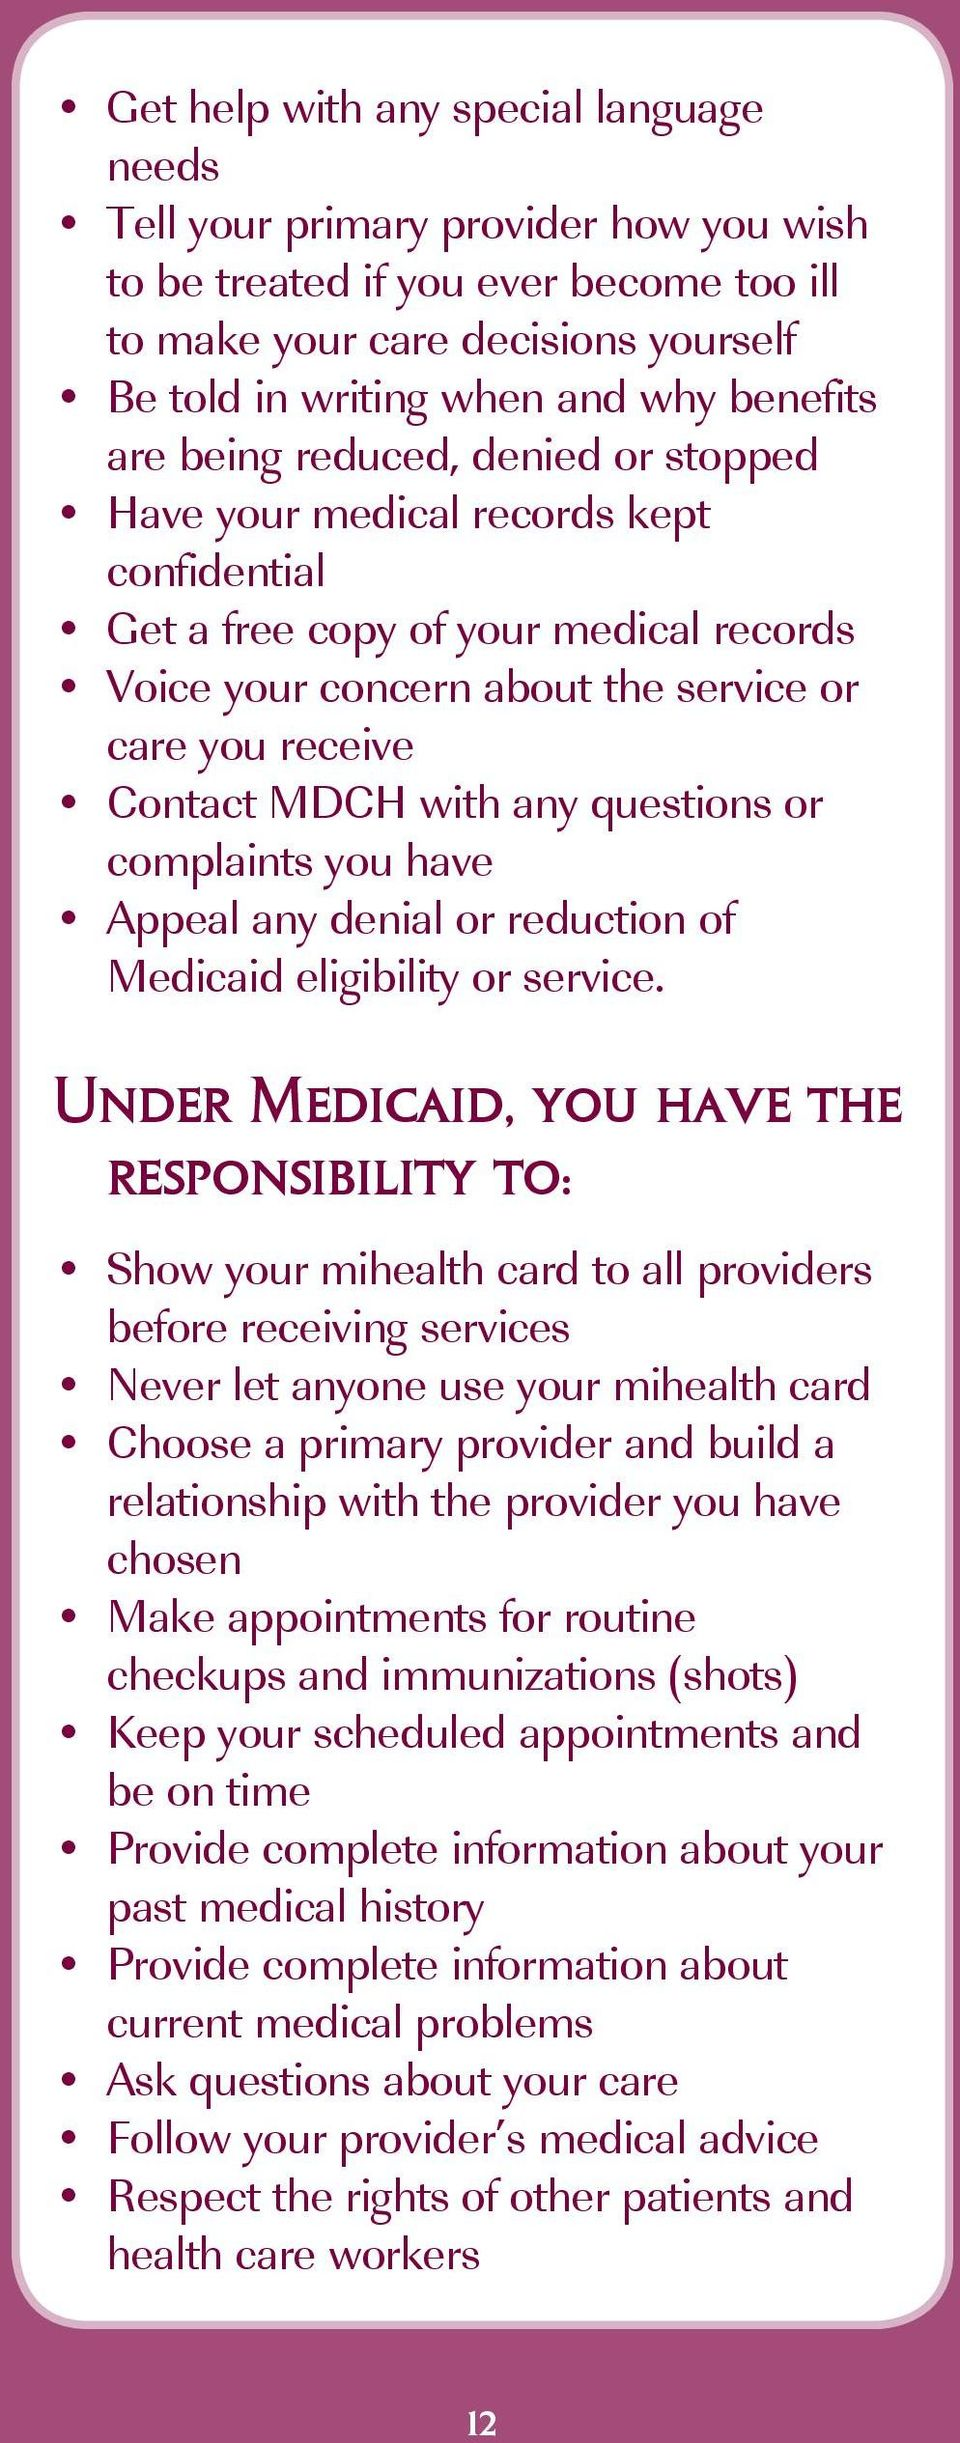 questions or complaints you have Appeal any denial or reduction of Medicaid eligibility or service.